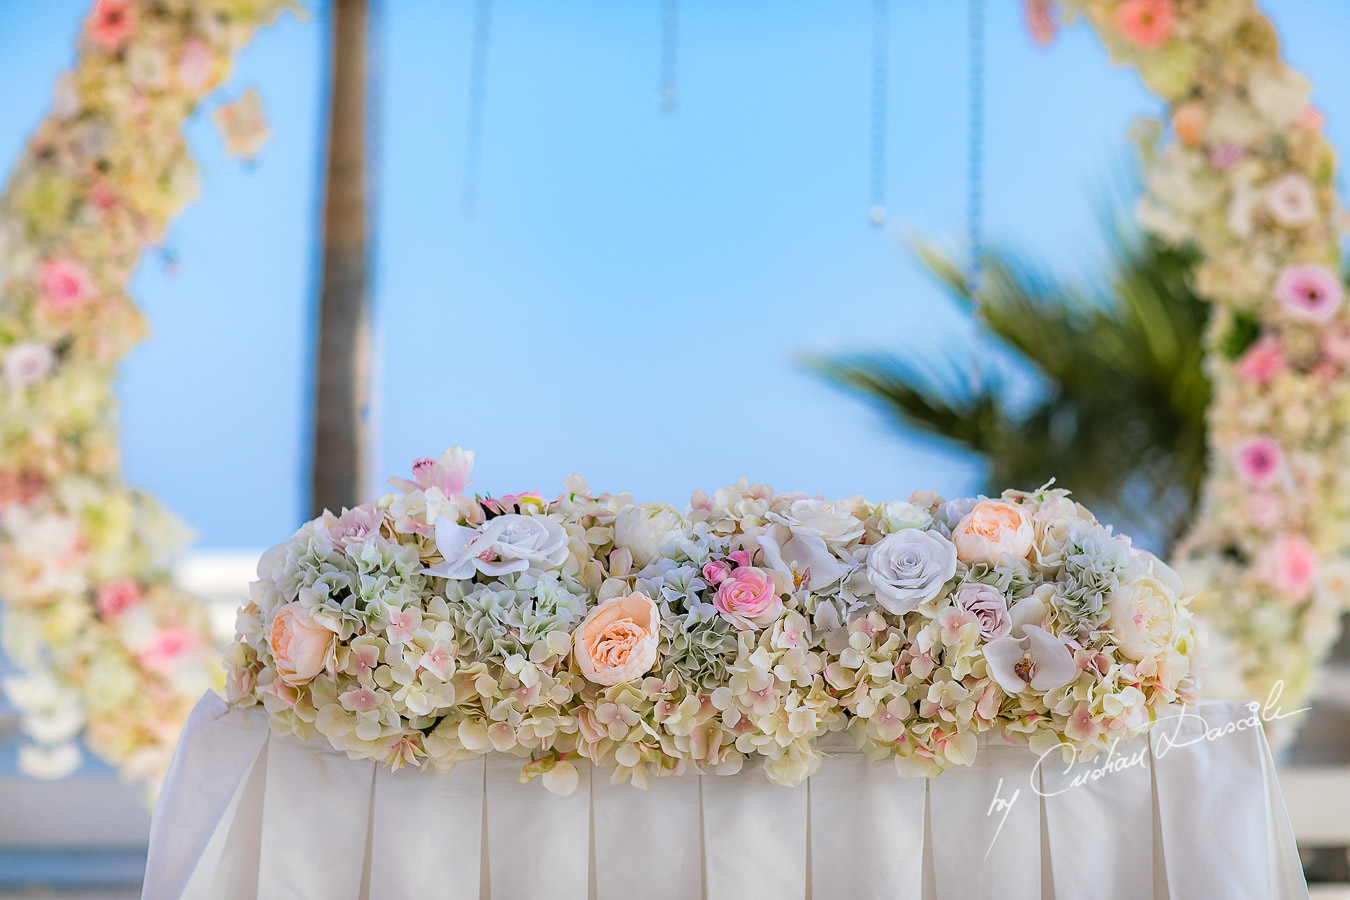 Beautiful Paper Flowers decorations, moments captured during an Exquisite Wedding at Asterias Beach Hotel. Photography by Cyprus Photographer Cristian Dascalu.